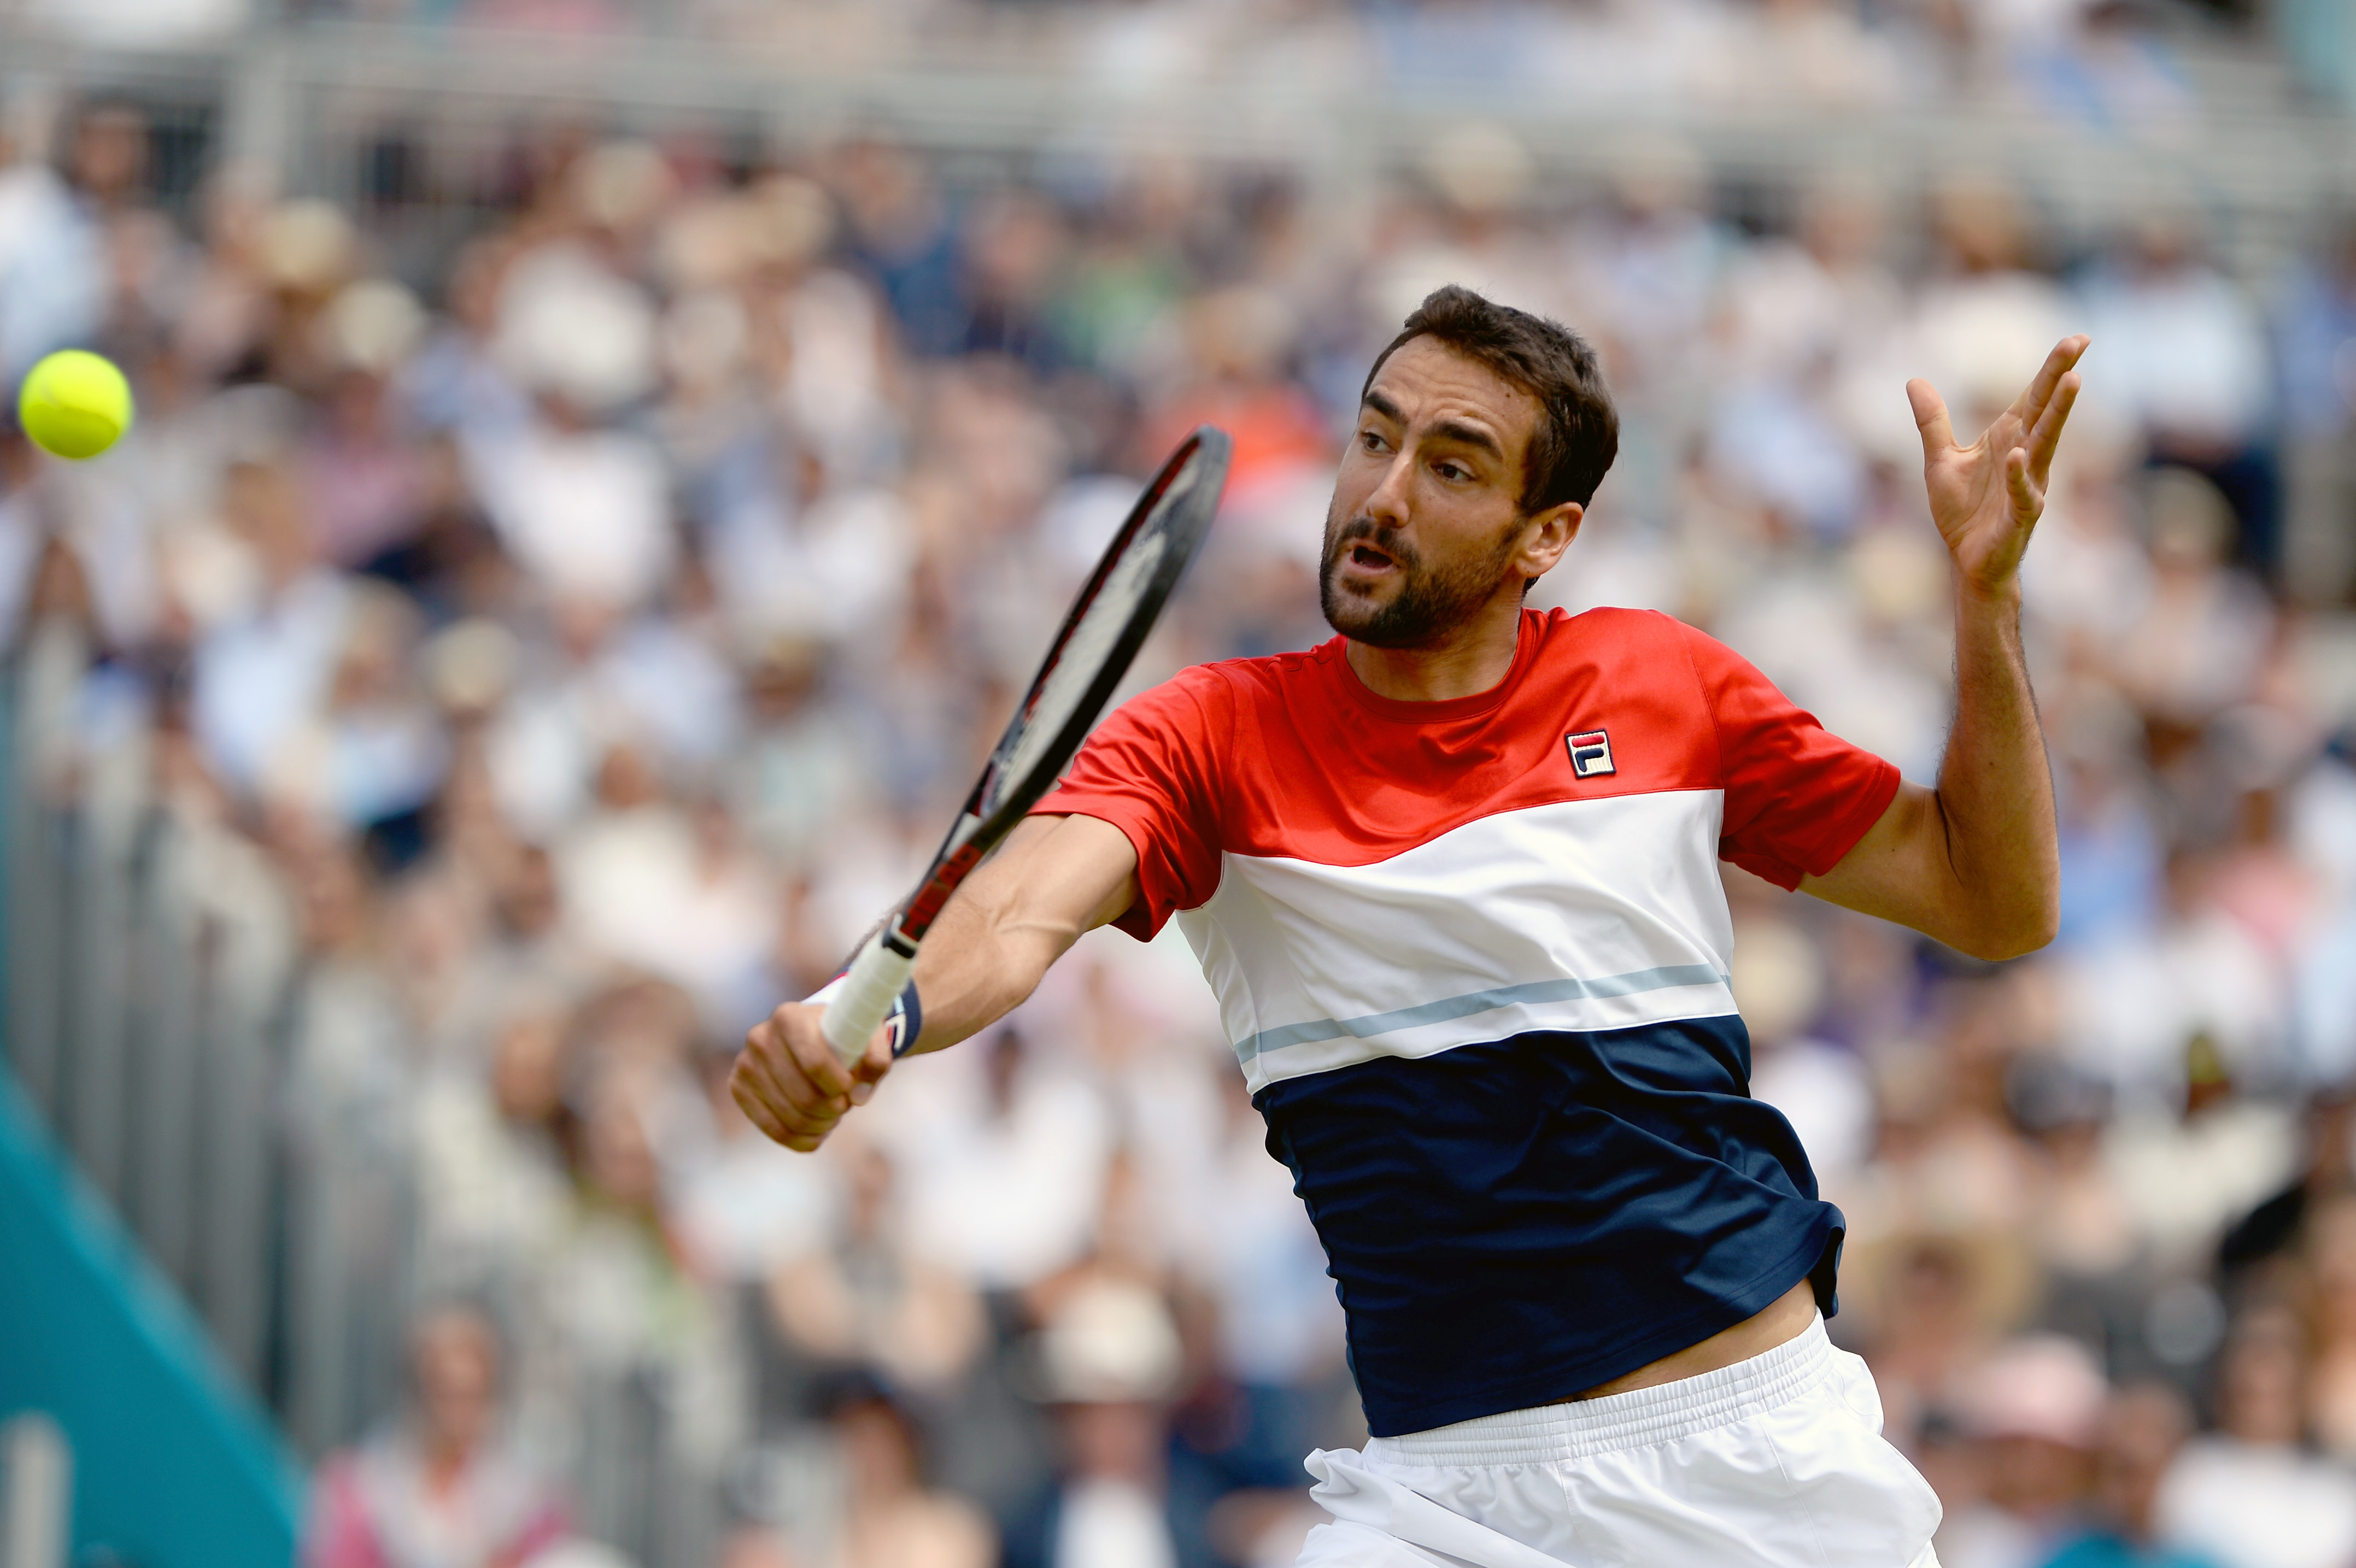 Marin Cilic hits a backhand volley against Nick Kyrgios on Centre Court